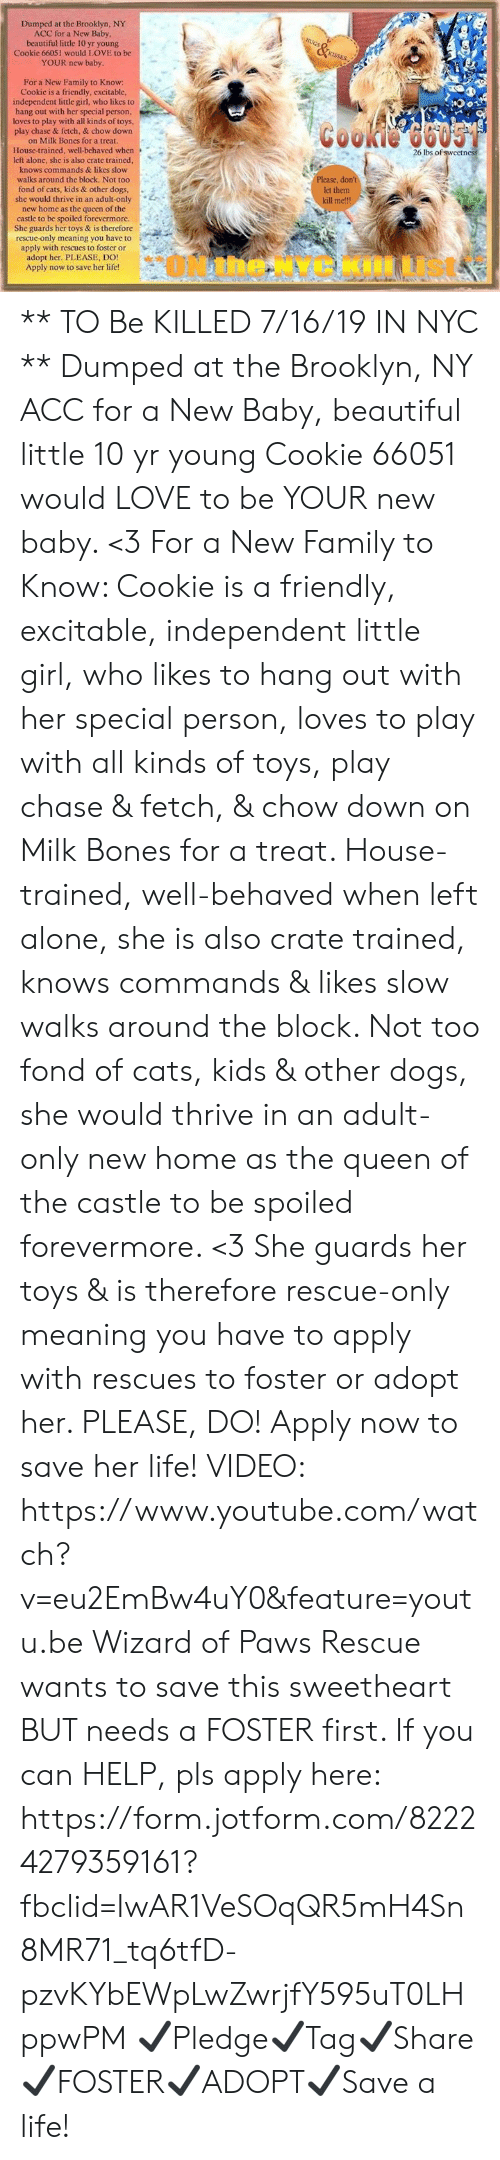 Being Alone, Beautiful, and Bones: Dumped at the Brooklyn, NY  ACC for a New Baby,  beautiful little 10 yr young  Cookie 66051 would LOVE to be  YOUR new baby  HUGS  &  KISSES  For a New Family to Know  Cookie is a friendly, excitable,  independent little girl, who likes to  hang out with her special person,  loves to play with all kinds of toys,  play chase & fetch, & chow down  Cookie 6605  on Milk Bones for a treat.  26 lbs of swcctness  House-trained, well-behaved when  left alone, she is also crate trained,  knows commands & likes slow  Please, don't  let them  kill me!!!  walks around the block. Not too  fond of cats, kids & other dogs,  she would thrive in an adult-only  new home as the queen of the  castle to be spoiled forevermore.  She guards her toys & is therefore  rescue-only meaning you have to  apply with rescues to foster or  adopt her. PLEASE, DO!  Apply now to save her life! ** TO Be KILLED 7/16/19 IN NYC **  Dumped at the Brooklyn, NY ACC for a New Baby, beautiful little 10 yr young Cookie 66051 would LOVE to be YOUR new baby. <3 For a New Family to Know: Cookie is a friendly, excitable, independent little girl, who likes to hang out with her special person, loves to play with all kinds of toys, play chase & fetch, & chow down on Milk Bones for a treat. House-trained, well-behaved when left alone, she is also crate trained, knows commands & likes slow walks around the block. Not too fond of cats, kids & other dogs, she would thrive in an adult-only new home as the queen of the castle to be spoiled forevermore. <3 She guards her toys & is therefore rescue-only meaning you have to apply with rescues to foster or adopt her. PLEASE, DO! Apply now to save her life!   VIDEO: https://www.youtube.com/watch?v=eu2EmBw4uY0&feature=youtu.be  Wizard of Paws Rescue wants to save this sweetheart BUT needs a FOSTER first. If you can HELP, pls apply here:  https://form.jotform.com/82224279359161?fbclid=IwAR1VeSOqQR5mH4Sn8MR71_tq6tfD-pzvKYbEWpLwZwrjfY595uT0LHppwPM 